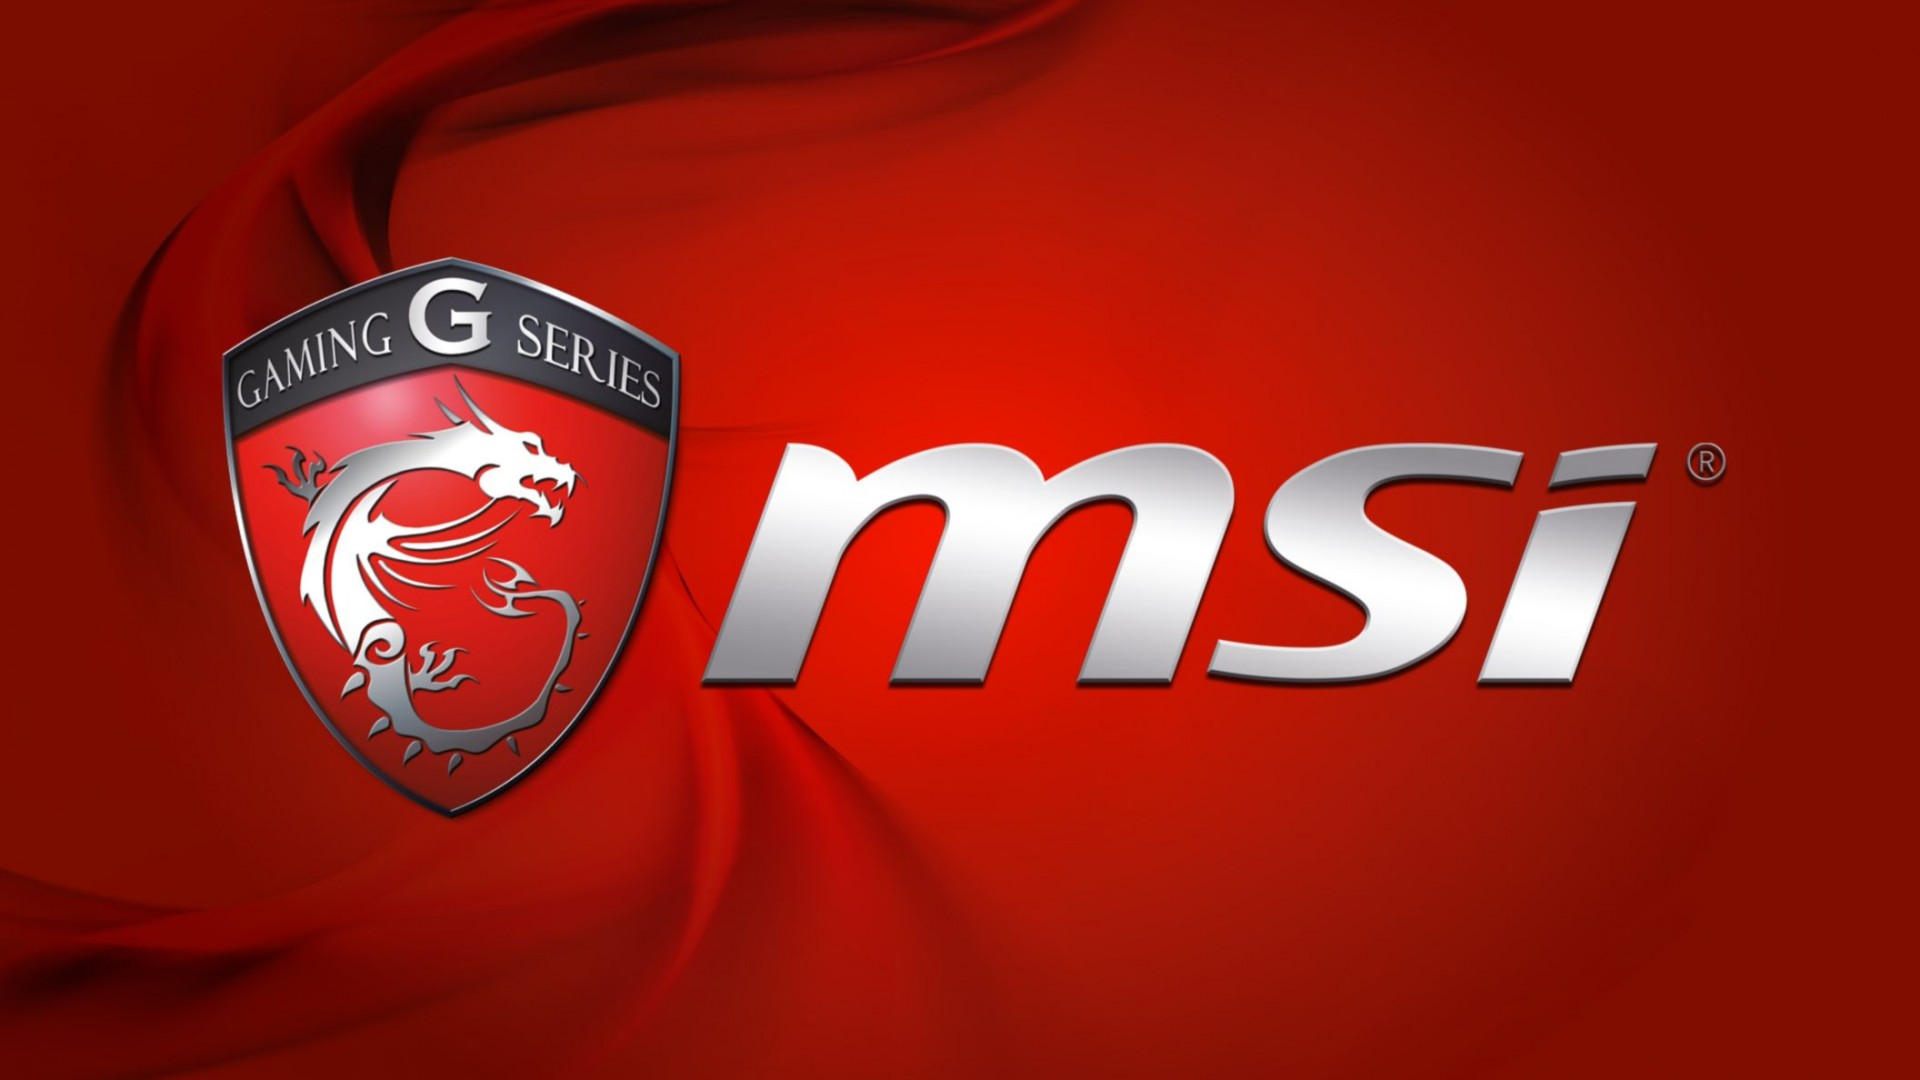 Msi Gaming Series HD Wallpaper